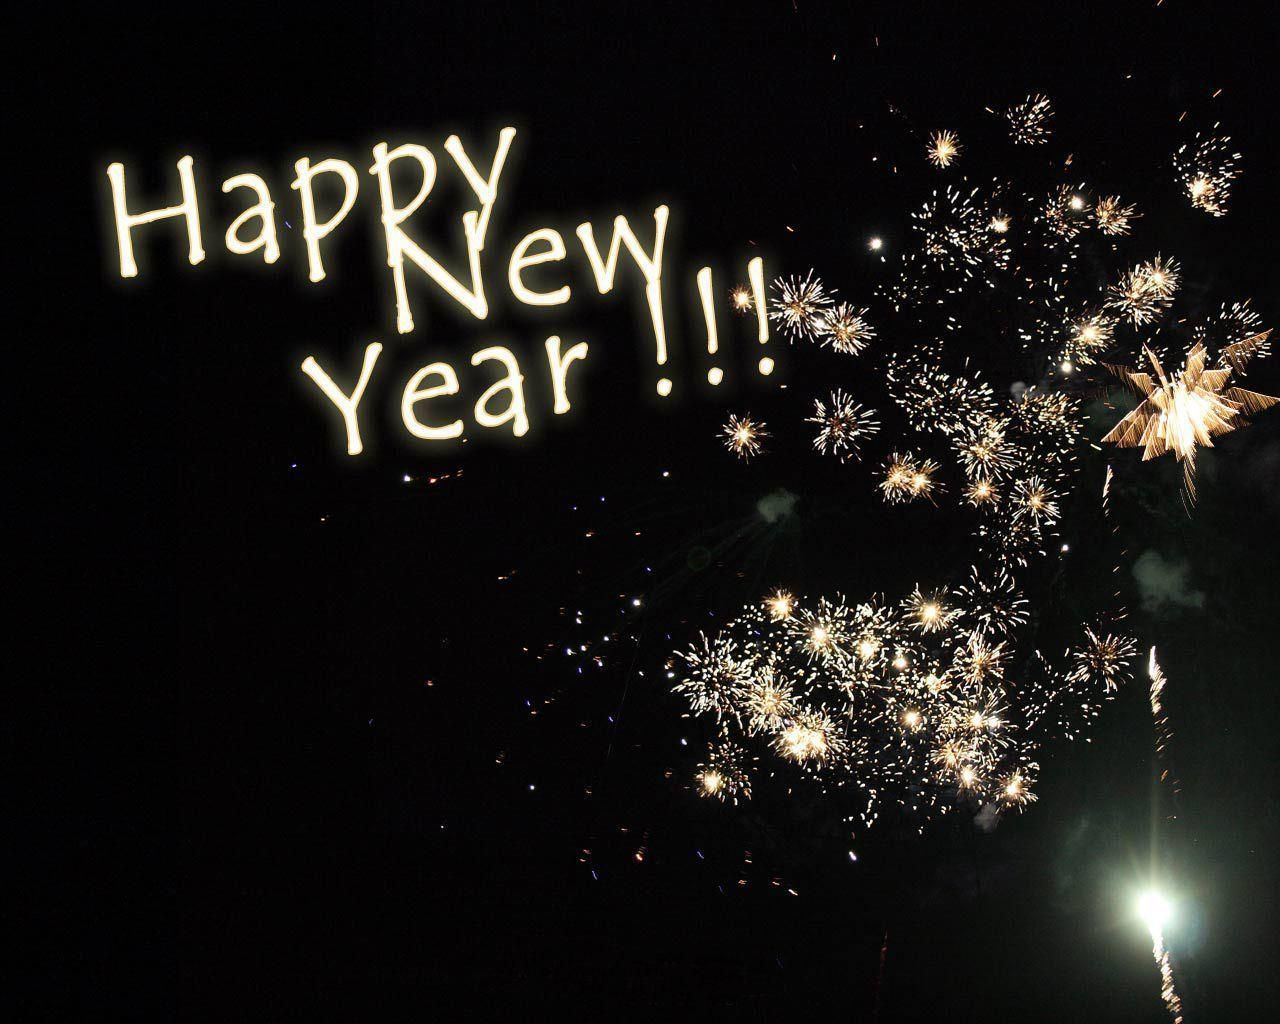 Happy New Year Wallpapers HD Download Free 2.